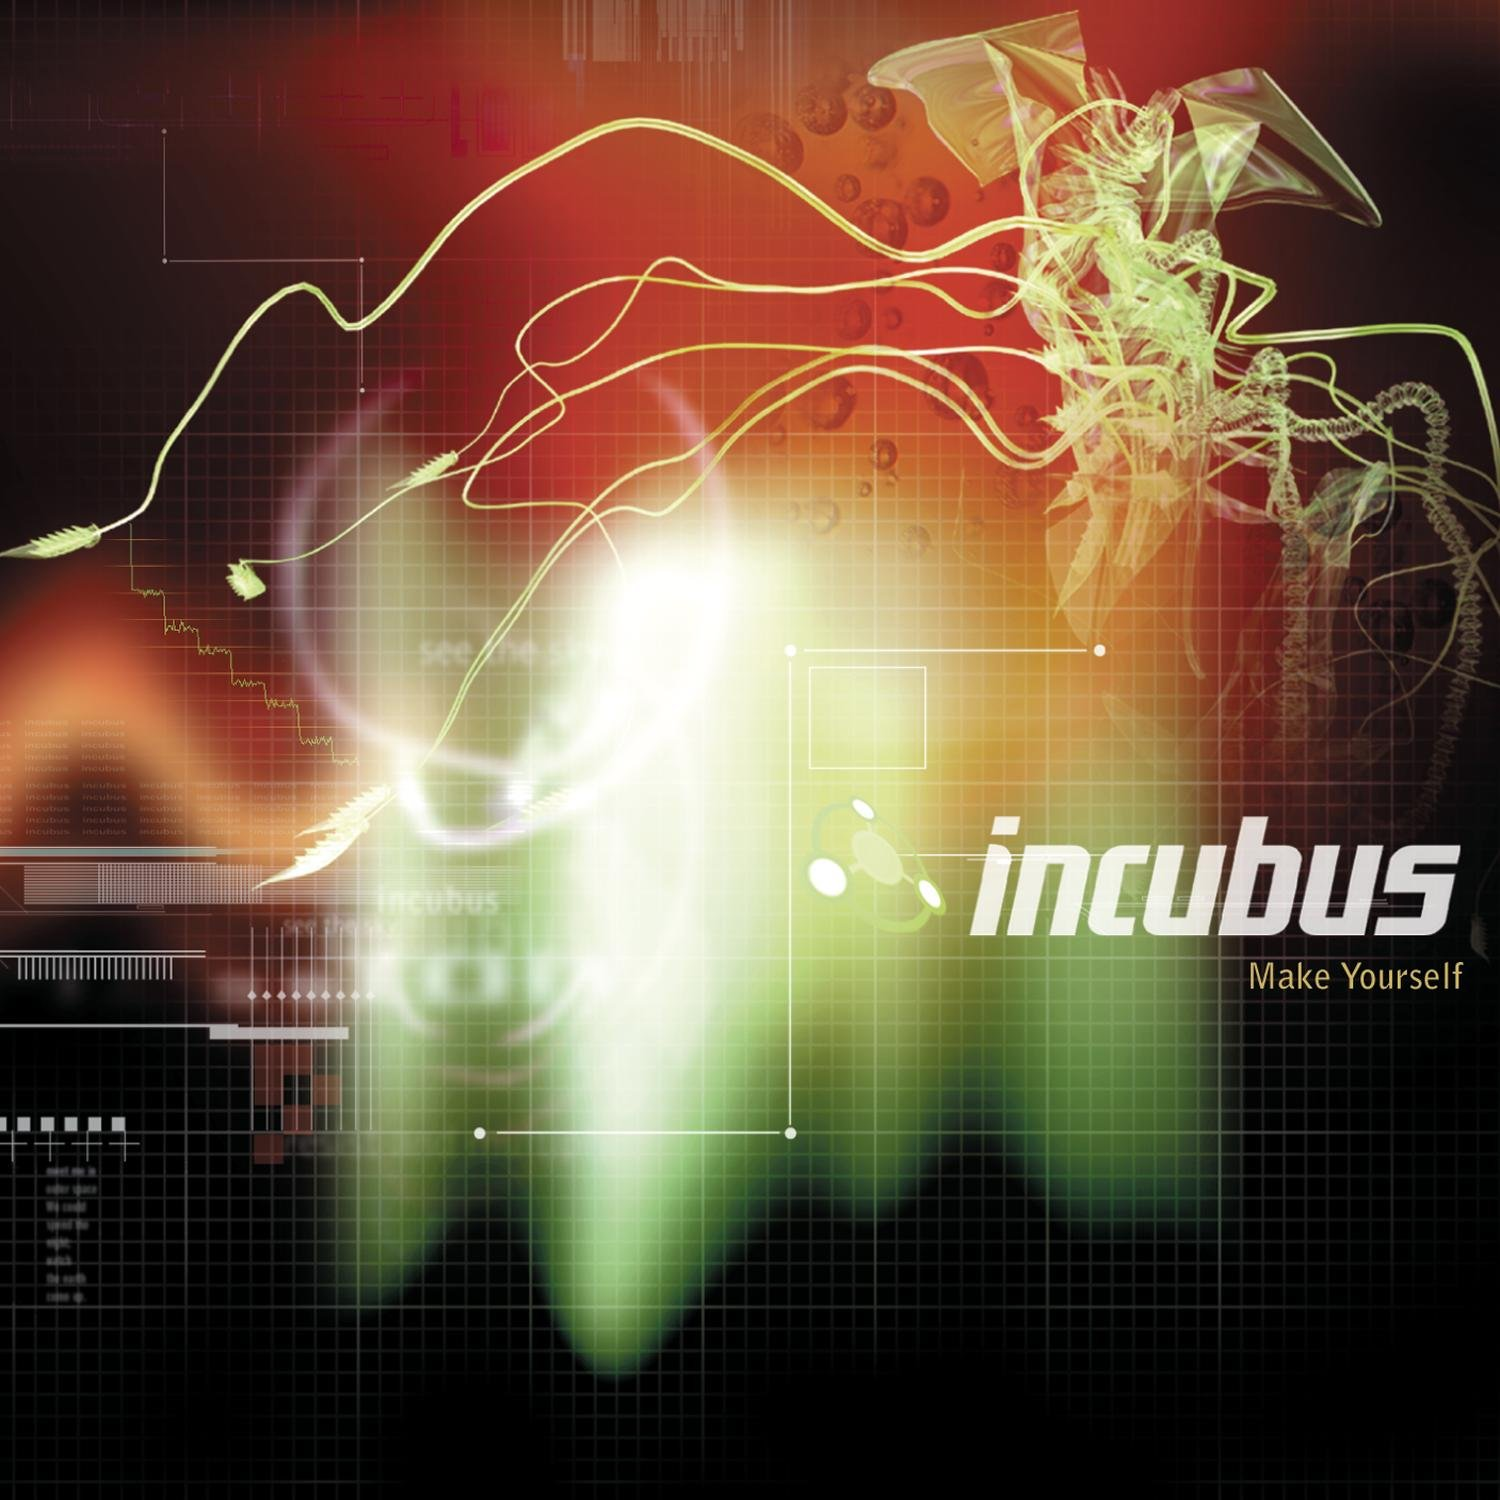 Incubus' artwork for Make Yourself